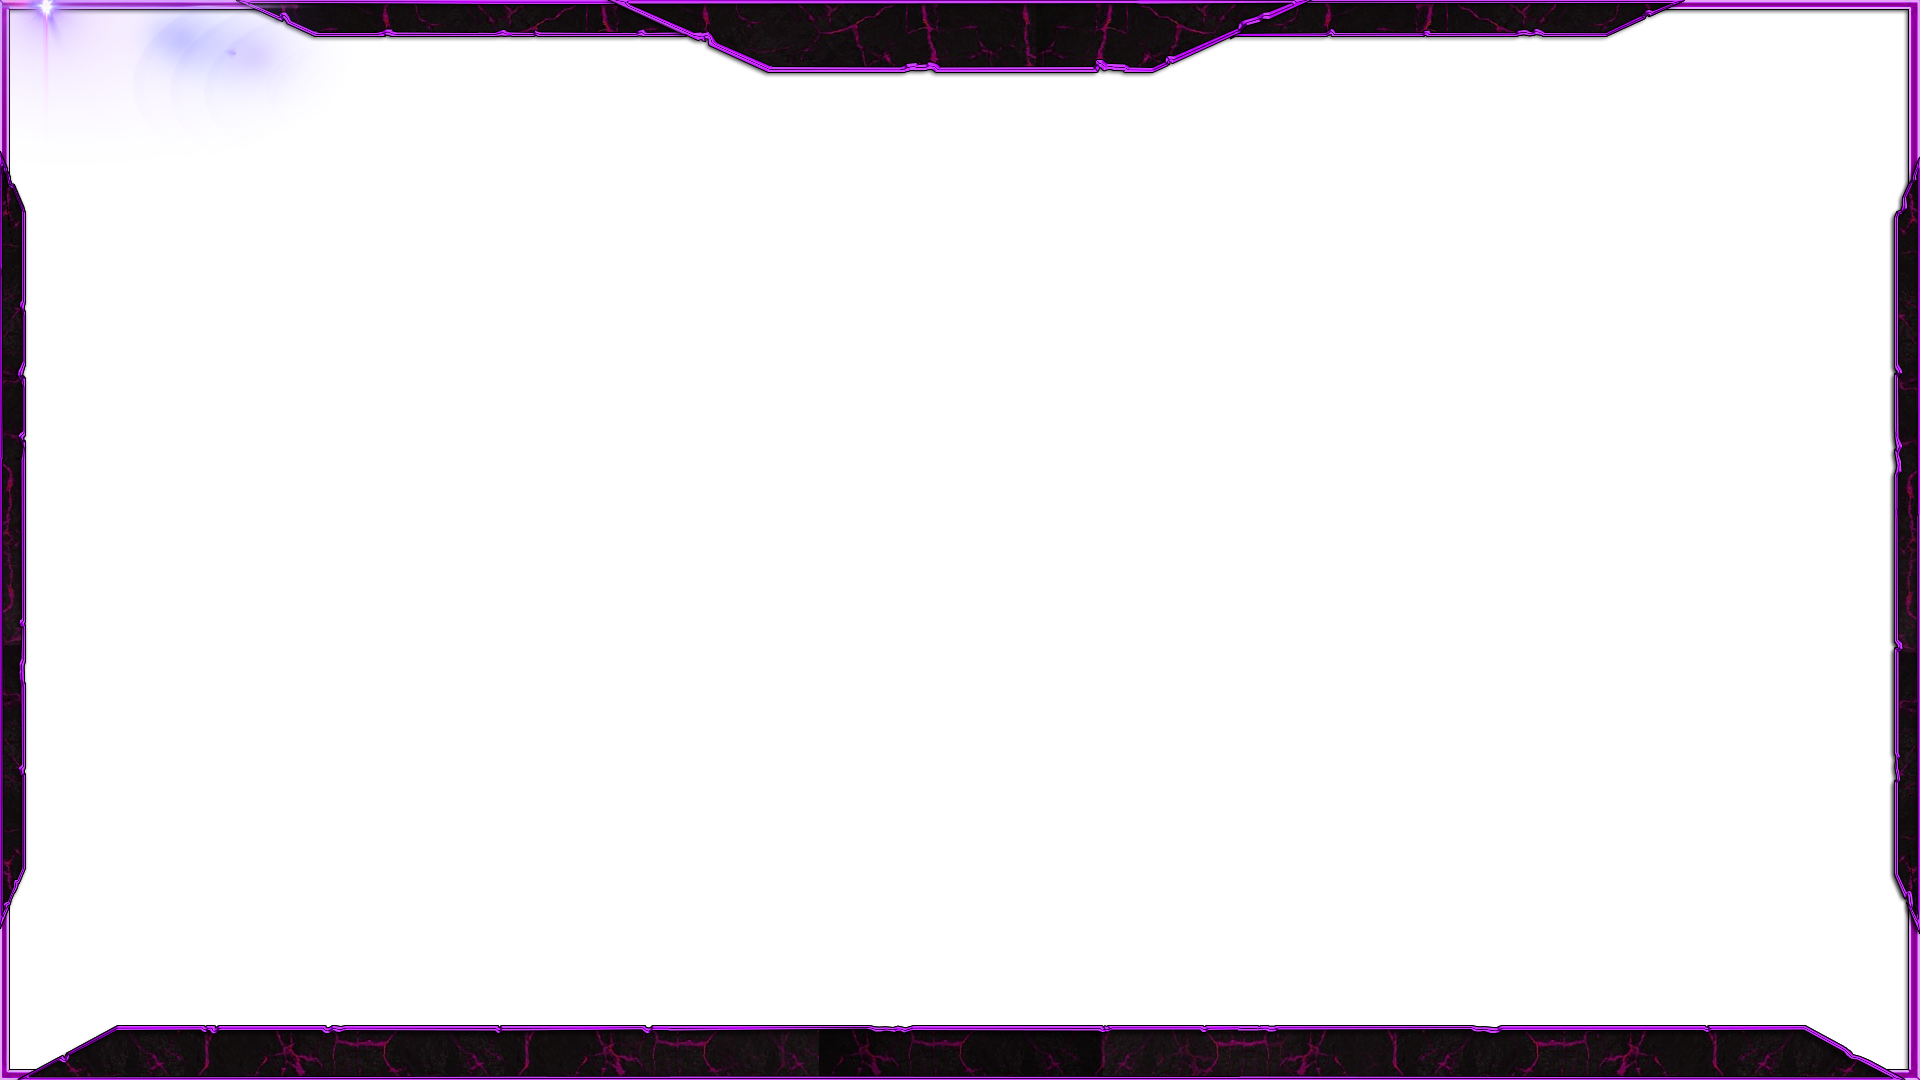 Stream Overlay PNG Free Download